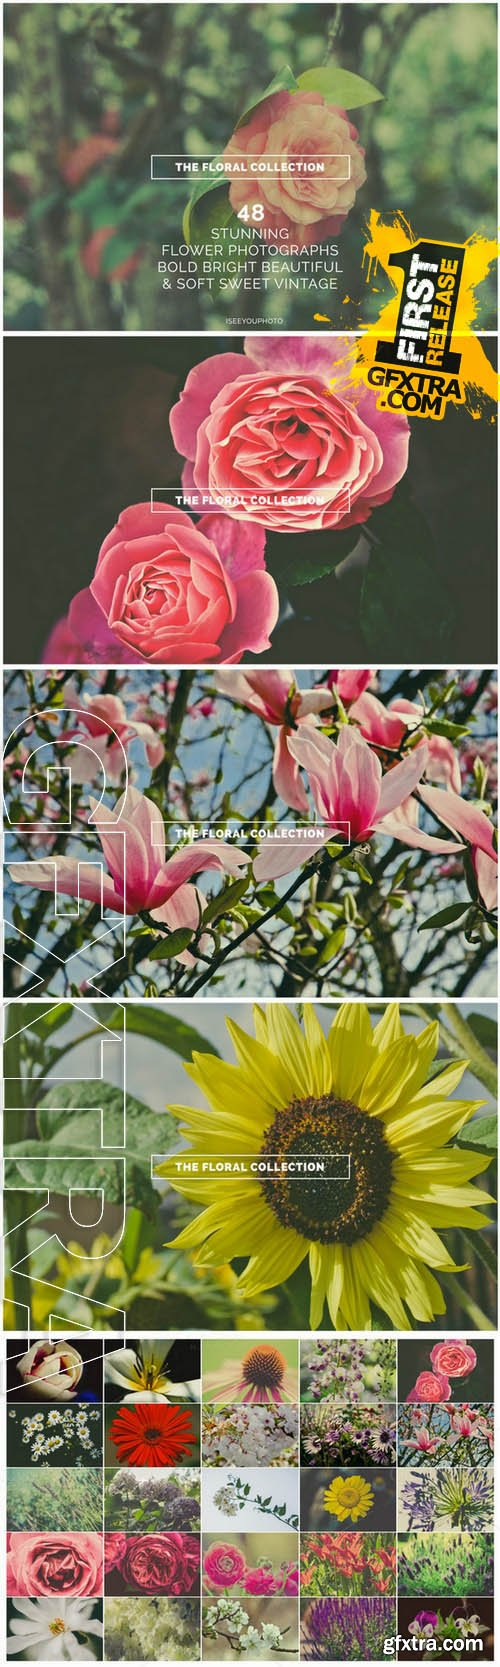 The Floral Collection - Iseeyouphoto - Creativemarket 63282